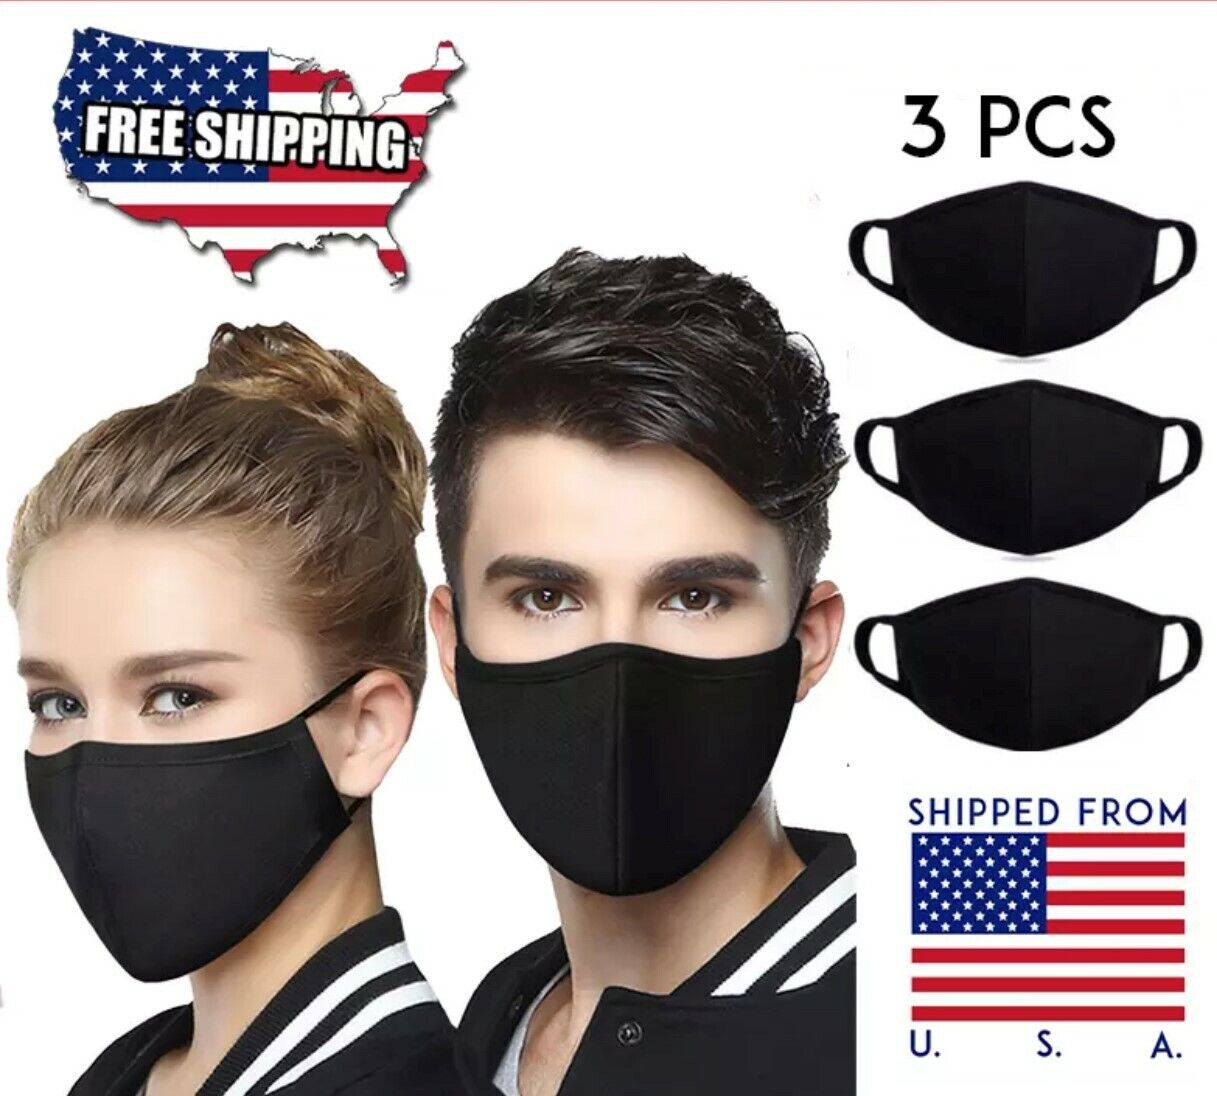 3PCS high quality Washable breathable Reusable Face Mask Protector Made in USA Accessories